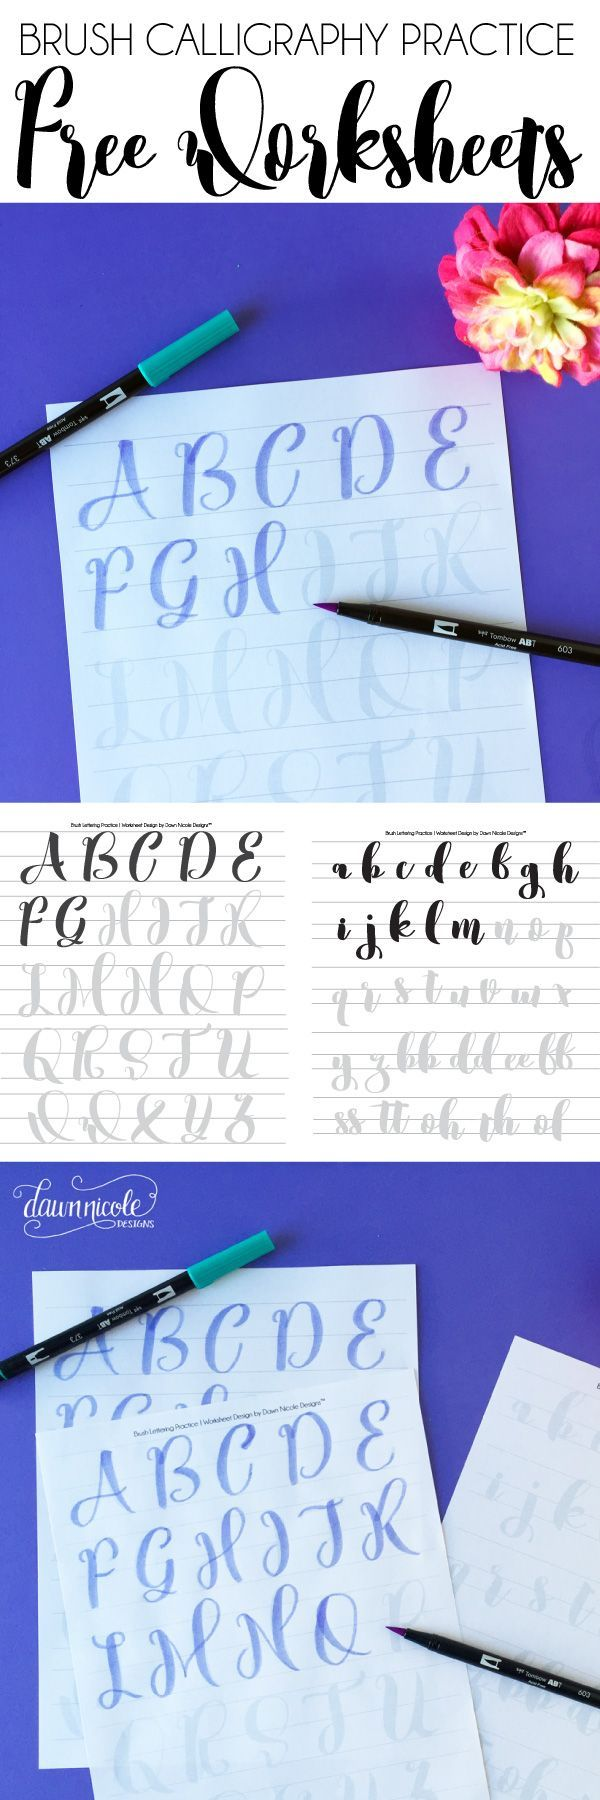 Free Brush Calligraphy Practice Worksheets | by Dawn Nicole | Bloglovin'